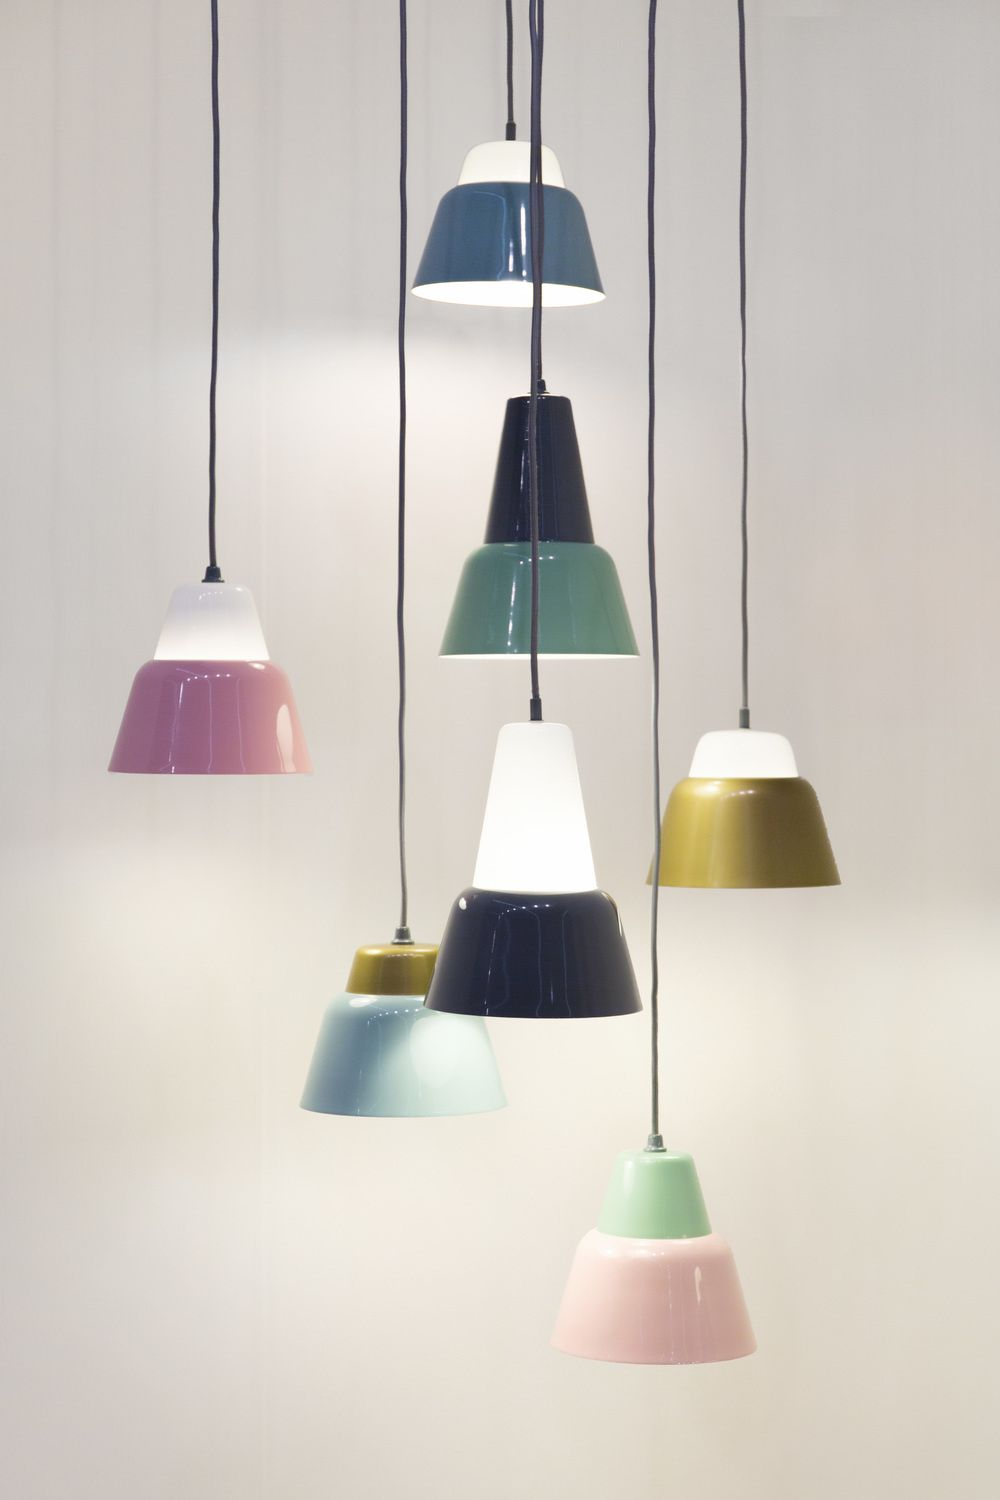 Lampade A Sospensione Cucina modu stands for modularity, the basic concept for this